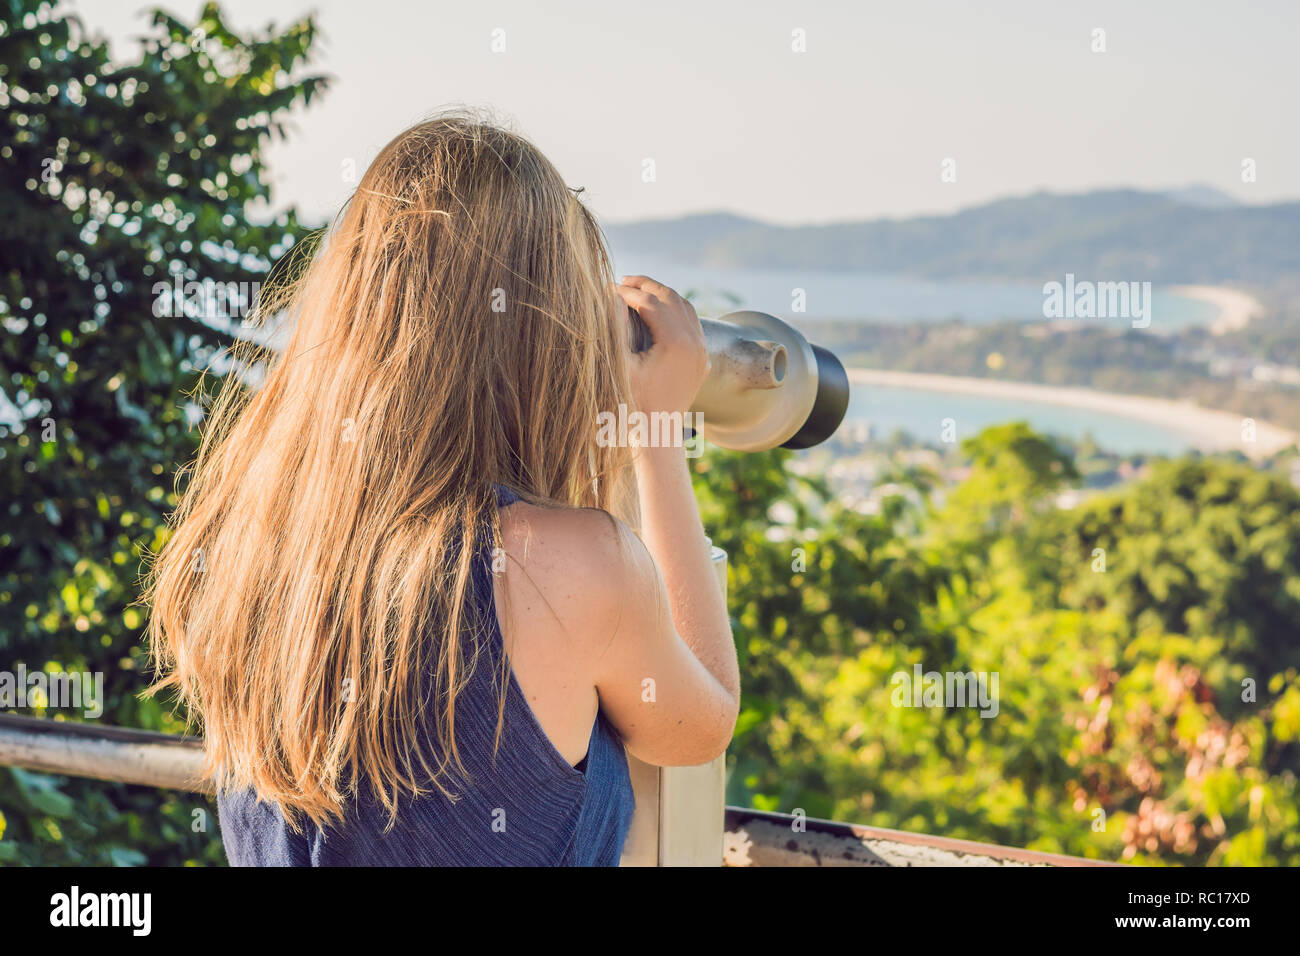 young beautiful blond woman enjoy the view with an coin operated binoculars. The water and the sky is blue. she wears a white dress and sunglasses. she feels good, is smiling and look to the horizon - Stock Image